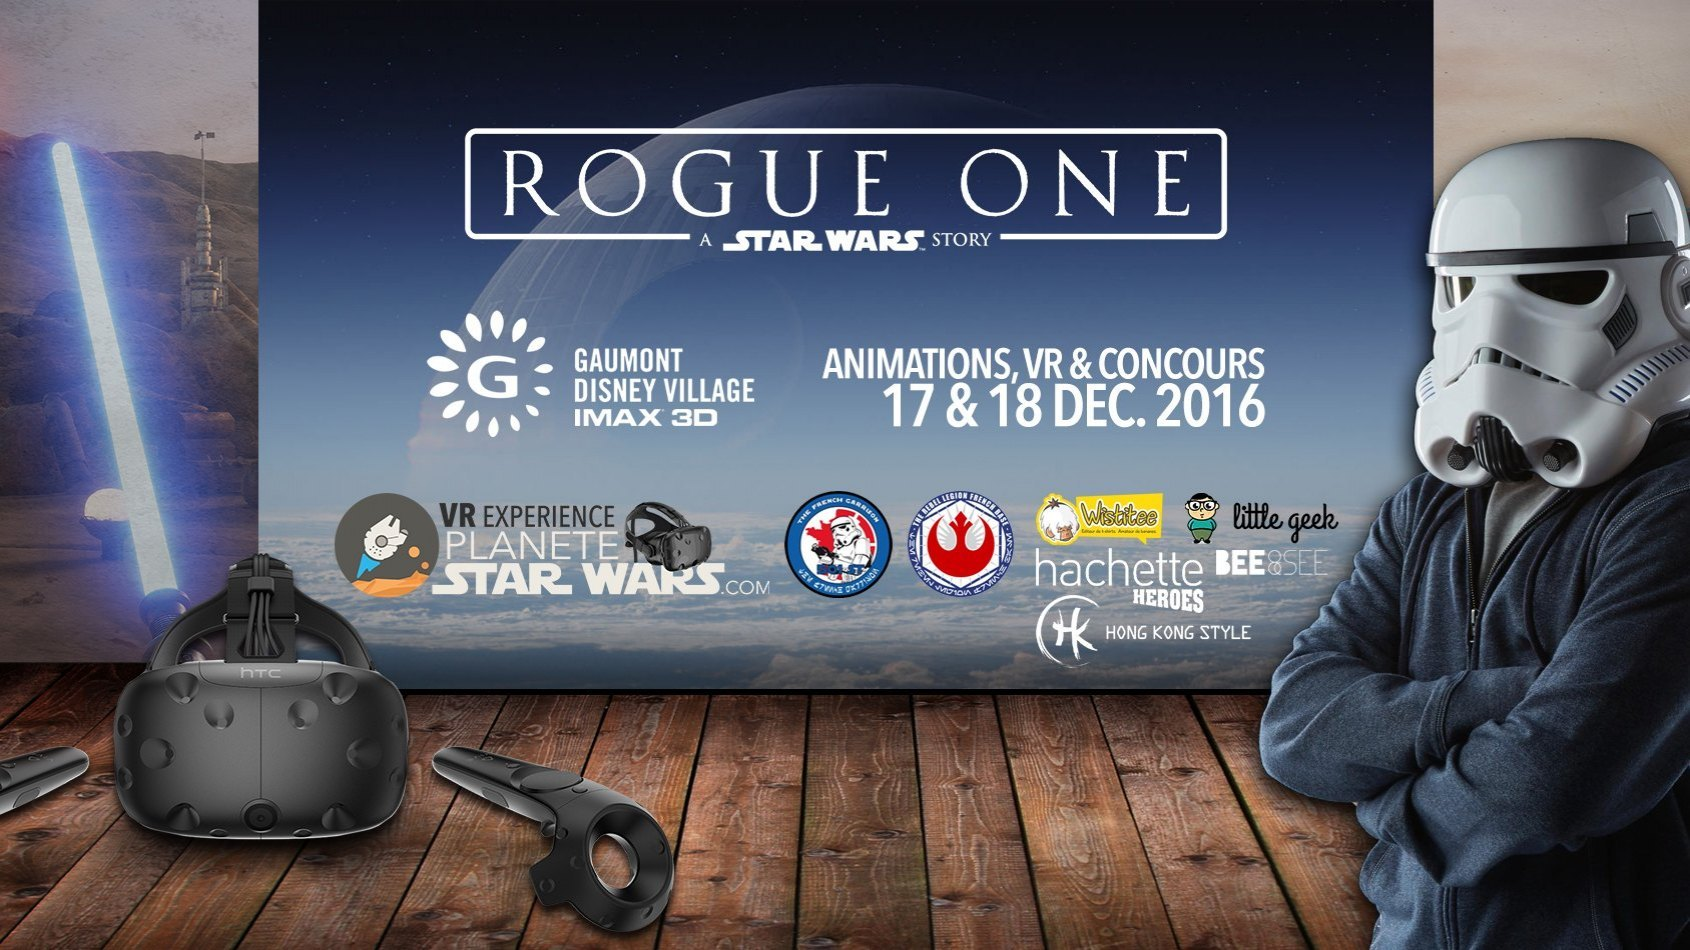 Rogue One : animations, VR & concours au Gaumont Disney Village